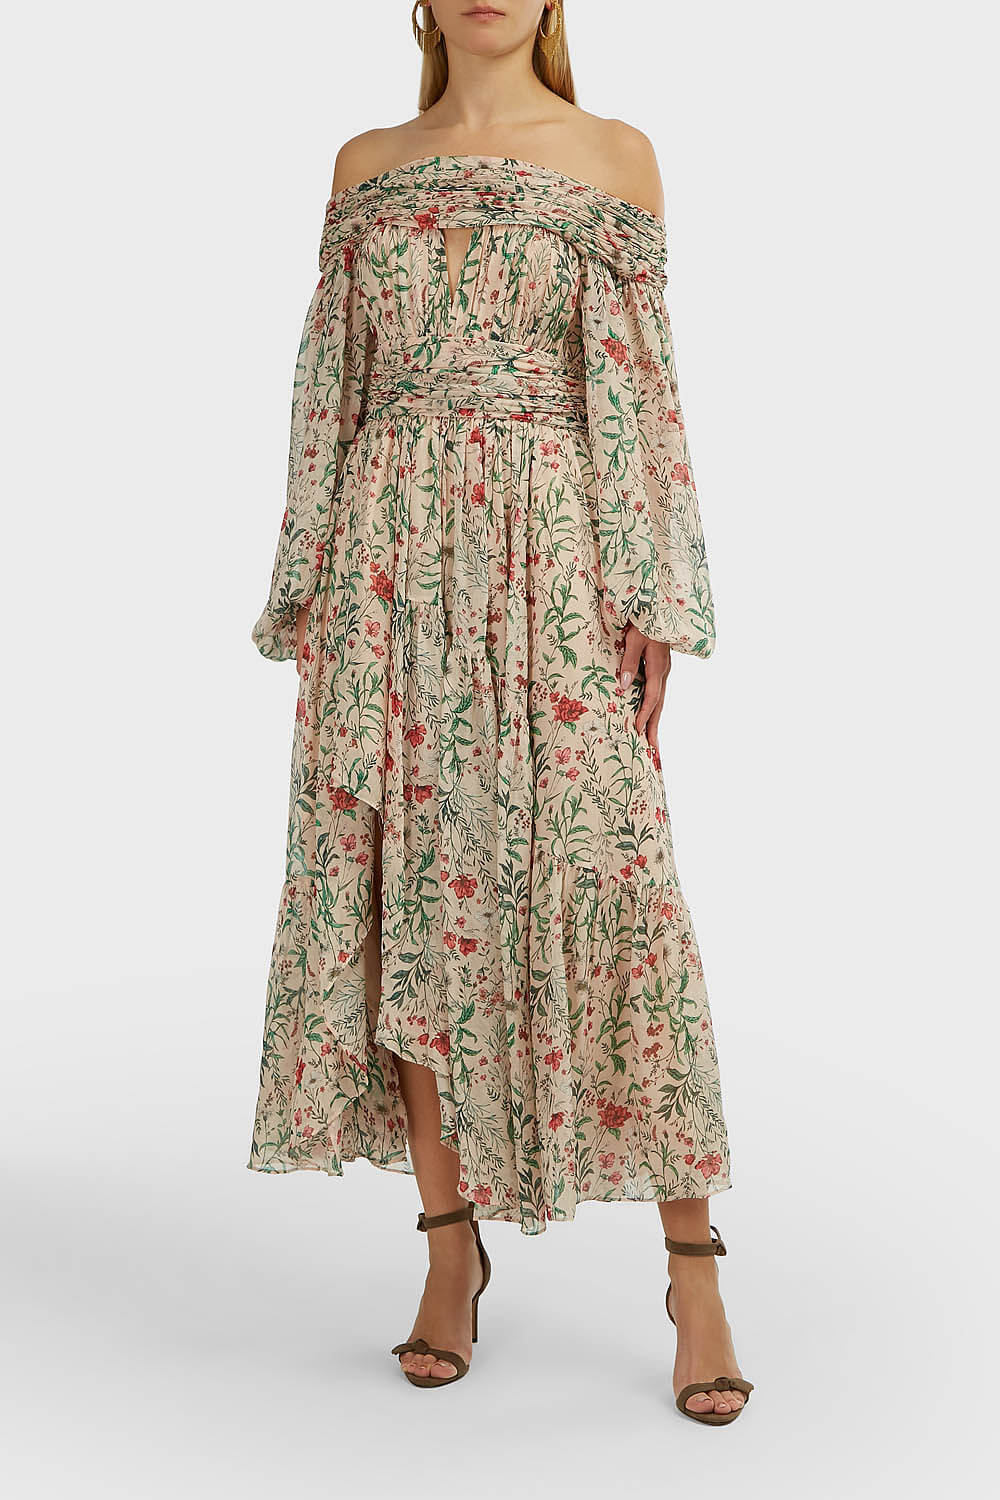 AMUR Daria Off-Shoulder Floral Dress